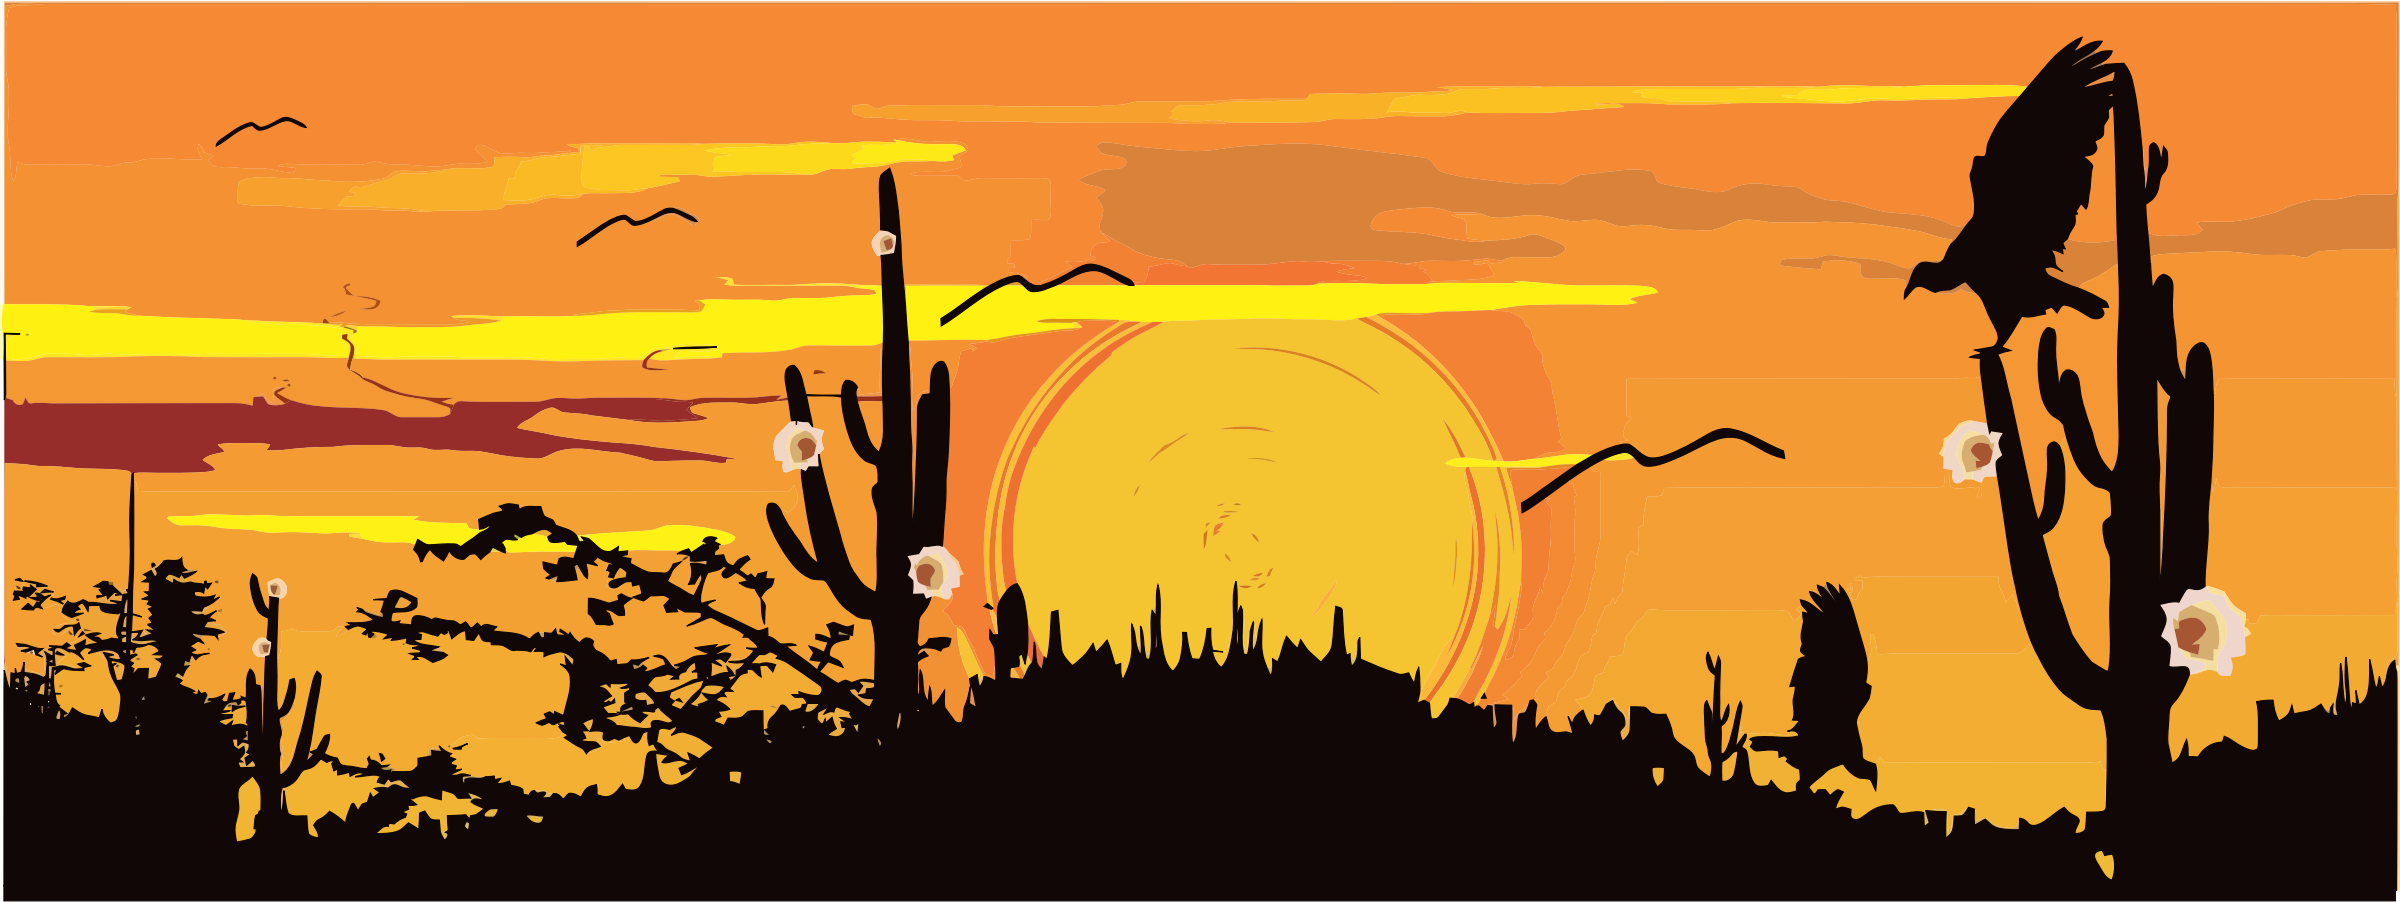 Desert clipart svg. Silhouette icons png free